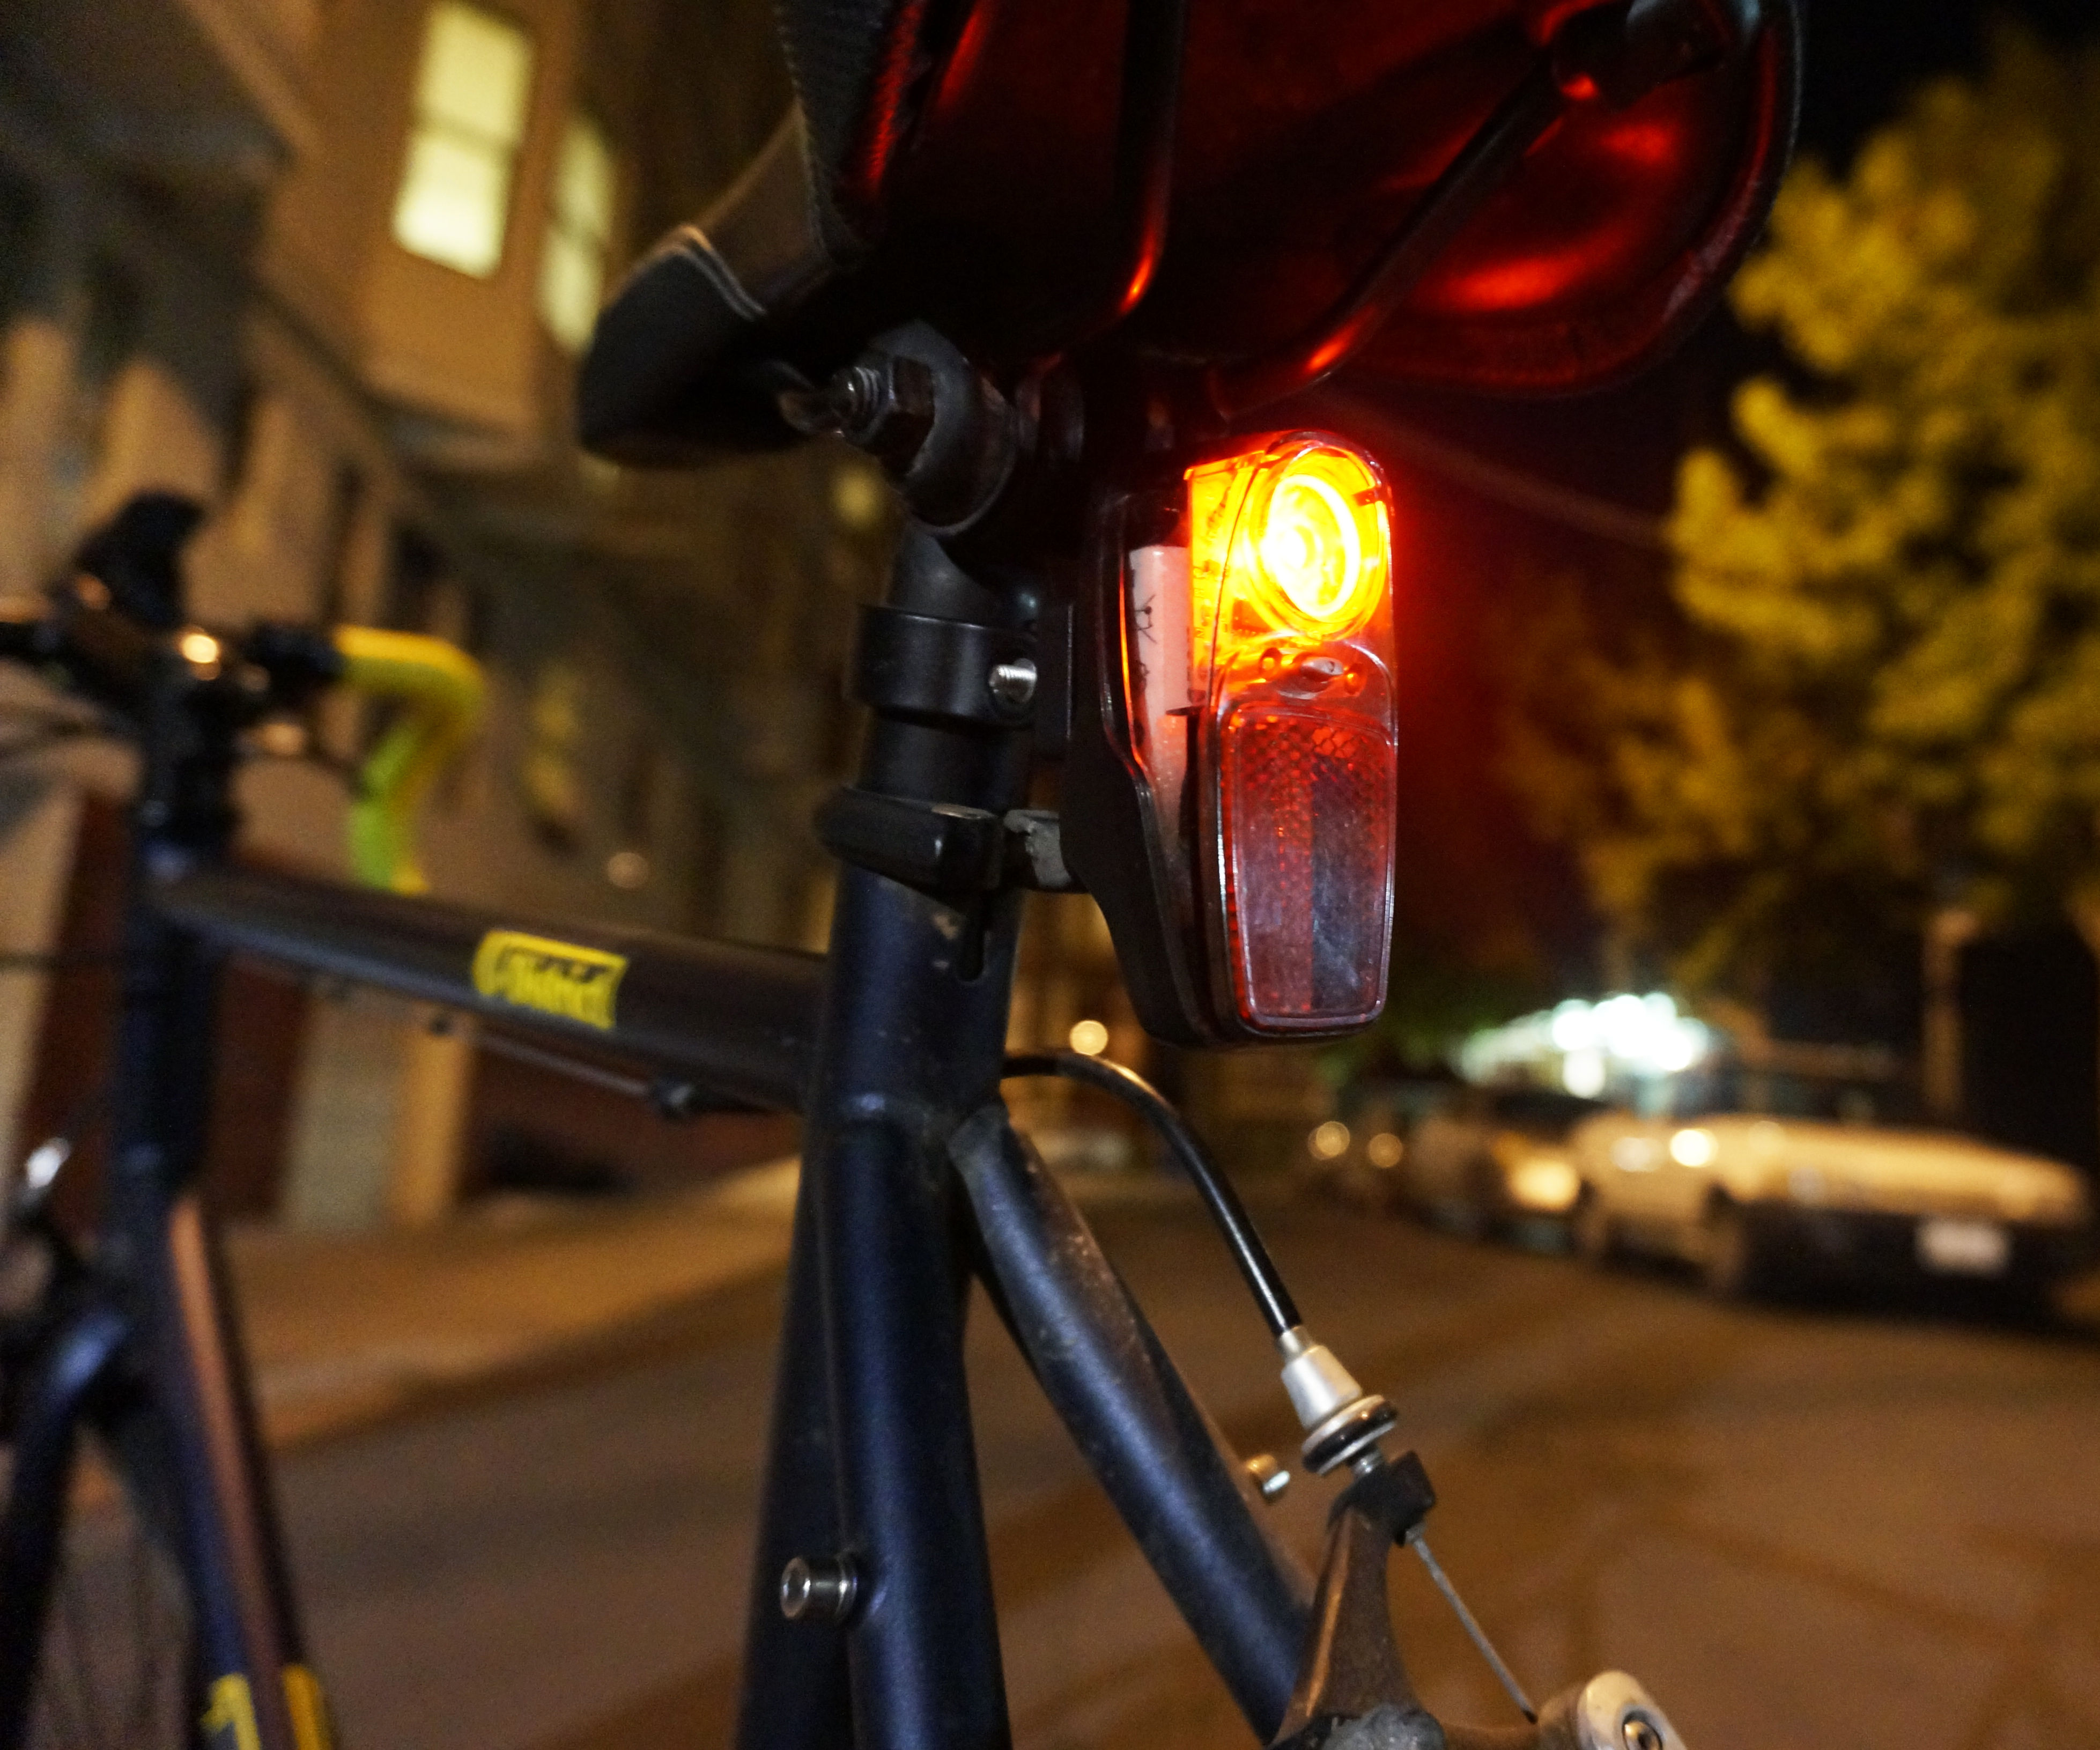 Automatic bike lights